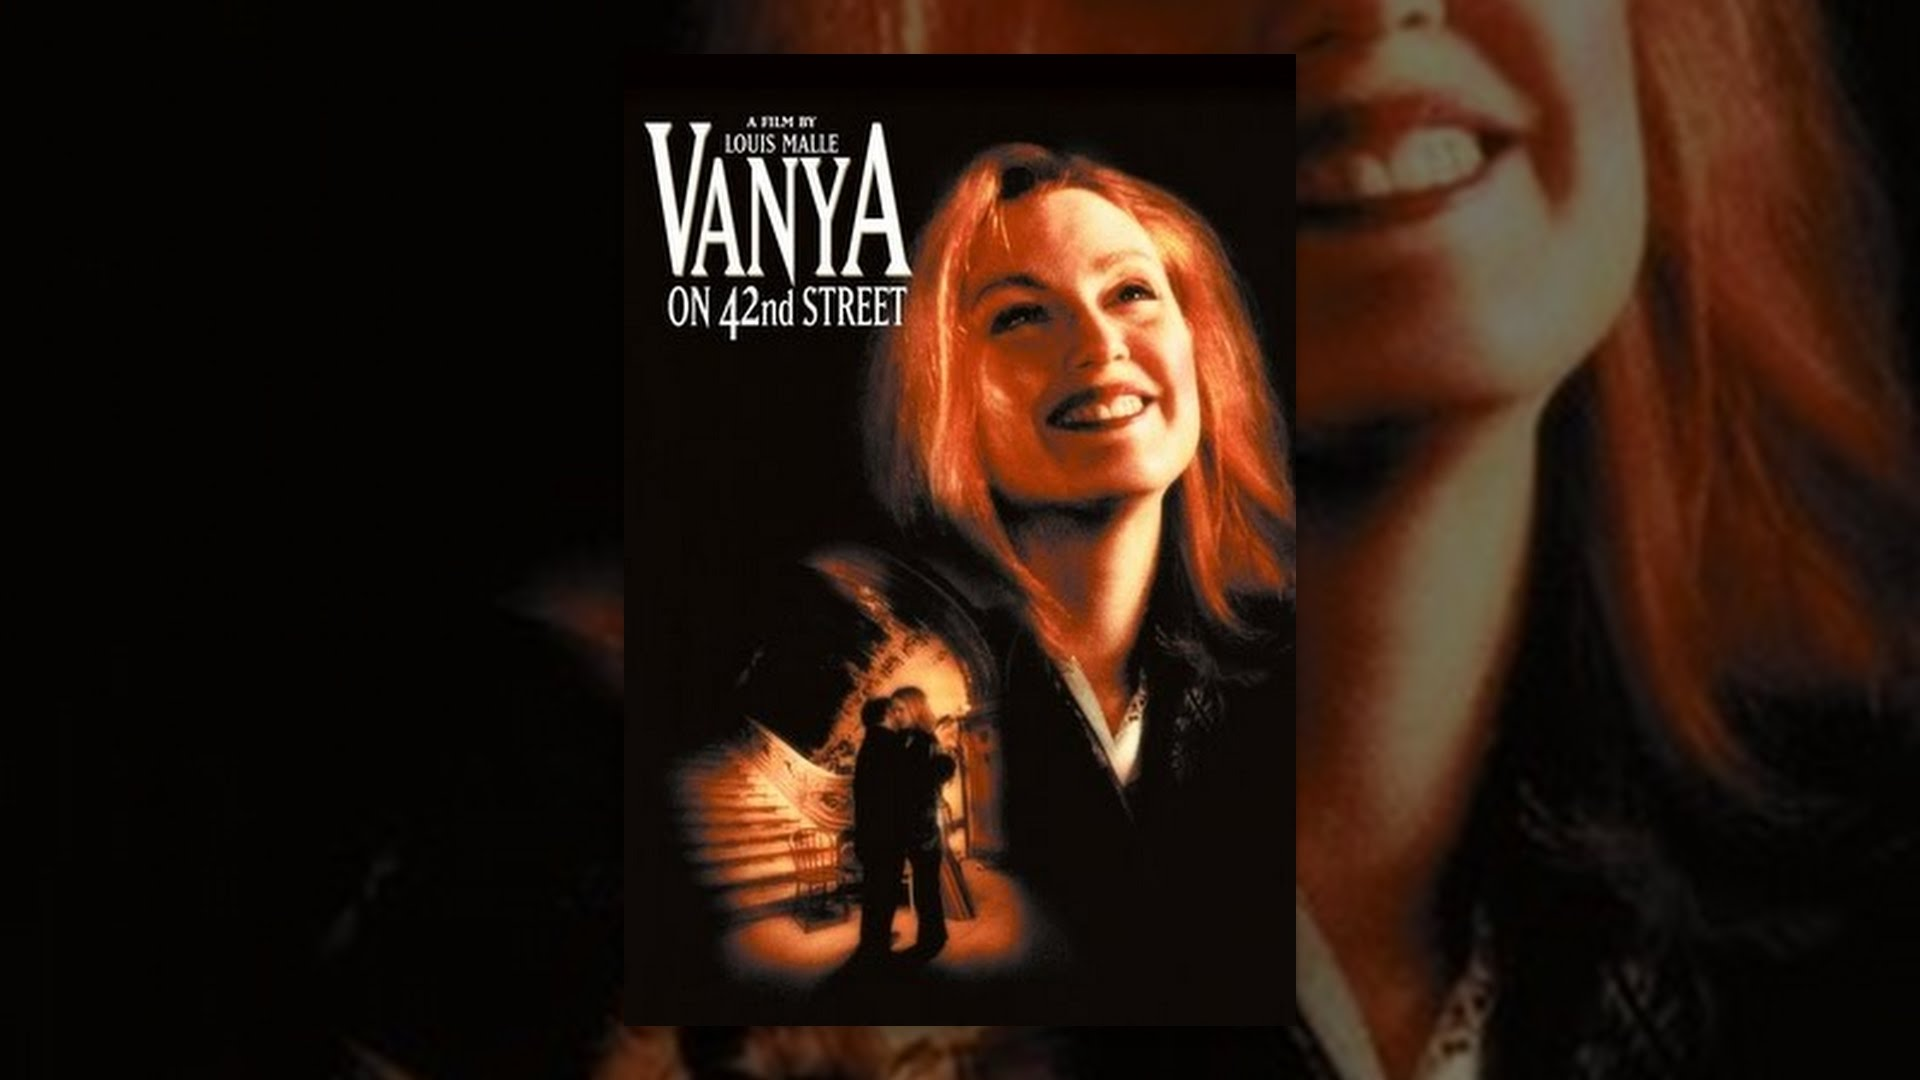 a report on vanya on 42nd street a 1994 film by louis malle Vanya on 42nd street louis malle & joshua redman (1994) vanya on 42nd street usa film and other music also is represented.